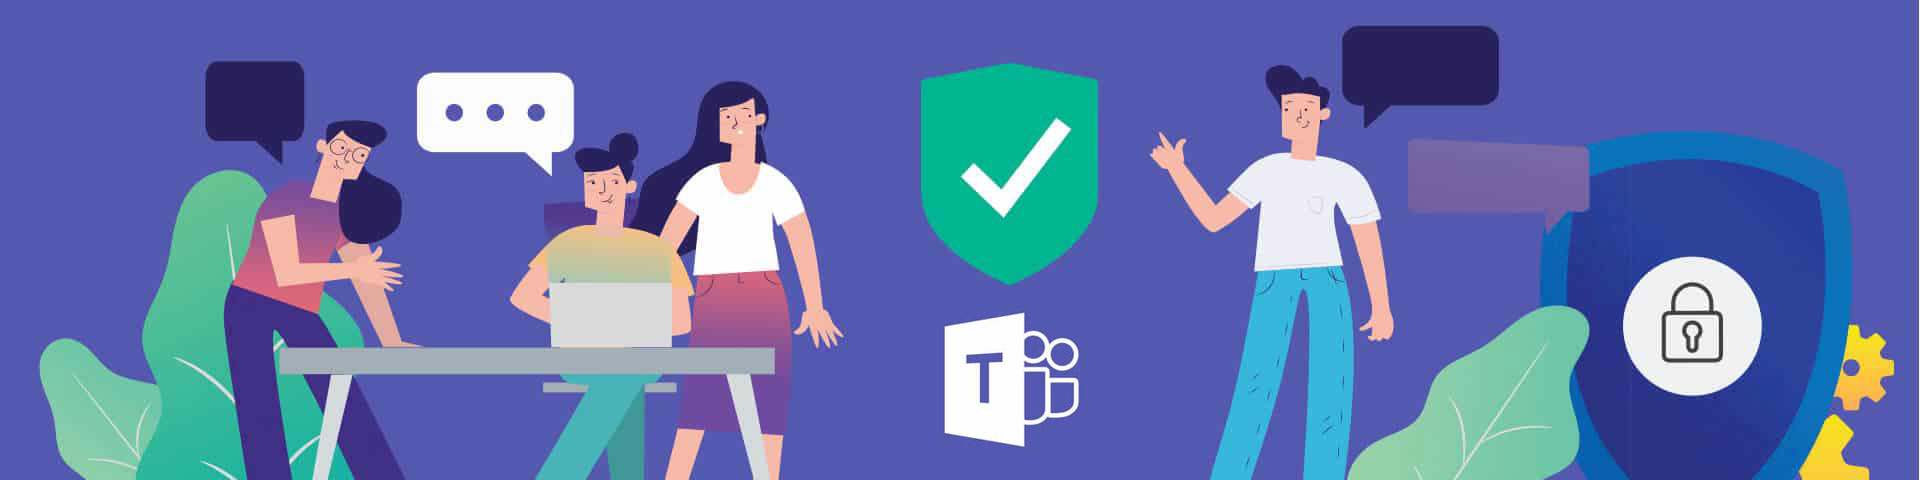 post microsoft teams